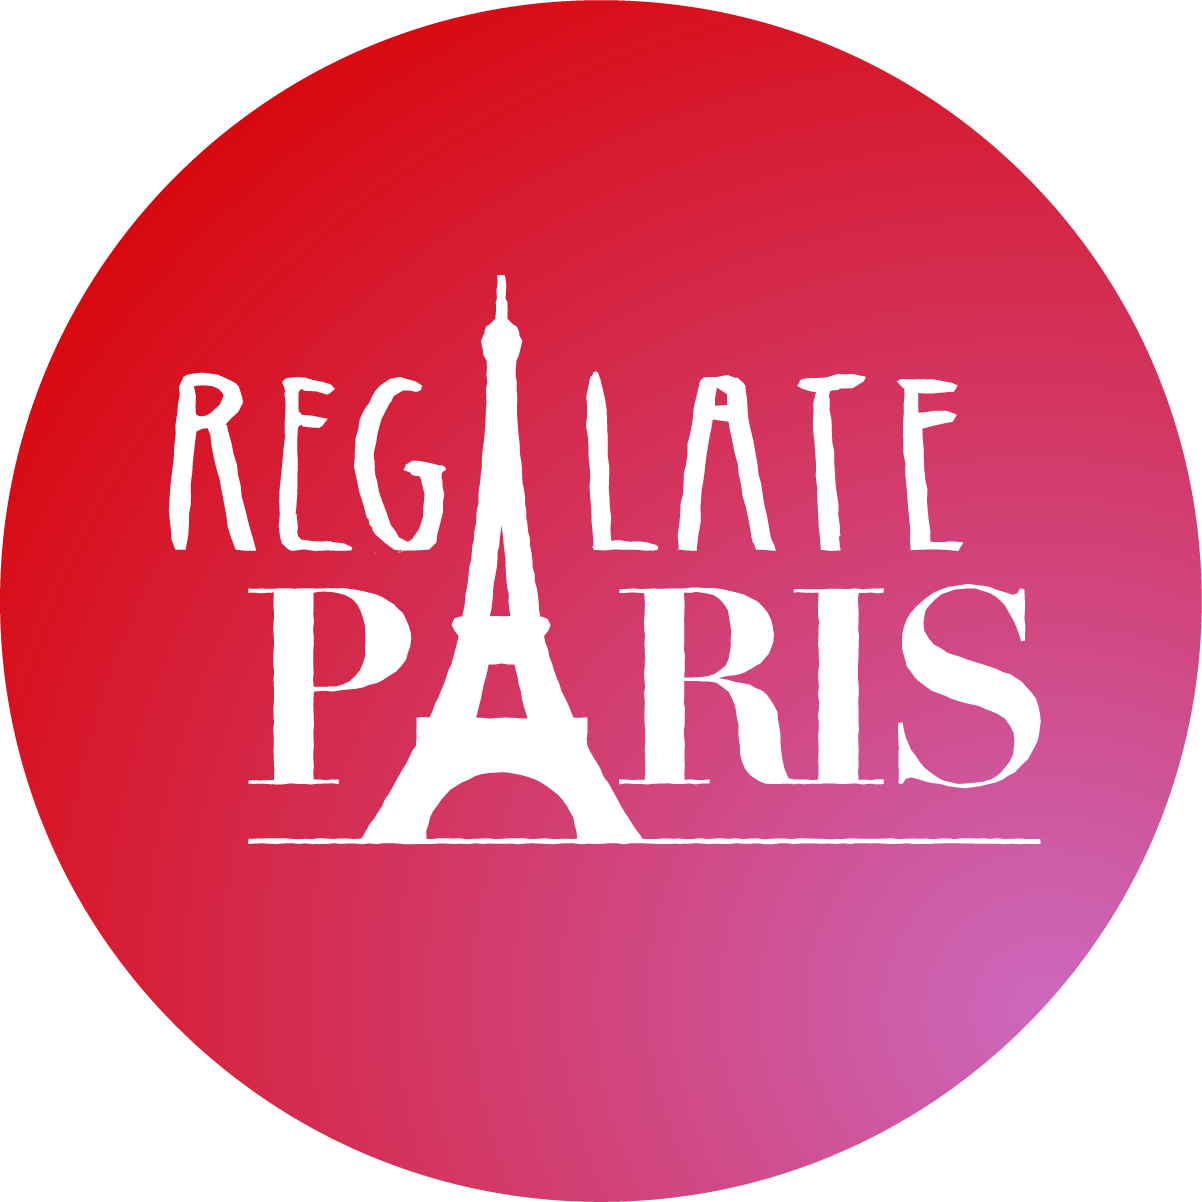 regalateparis.es